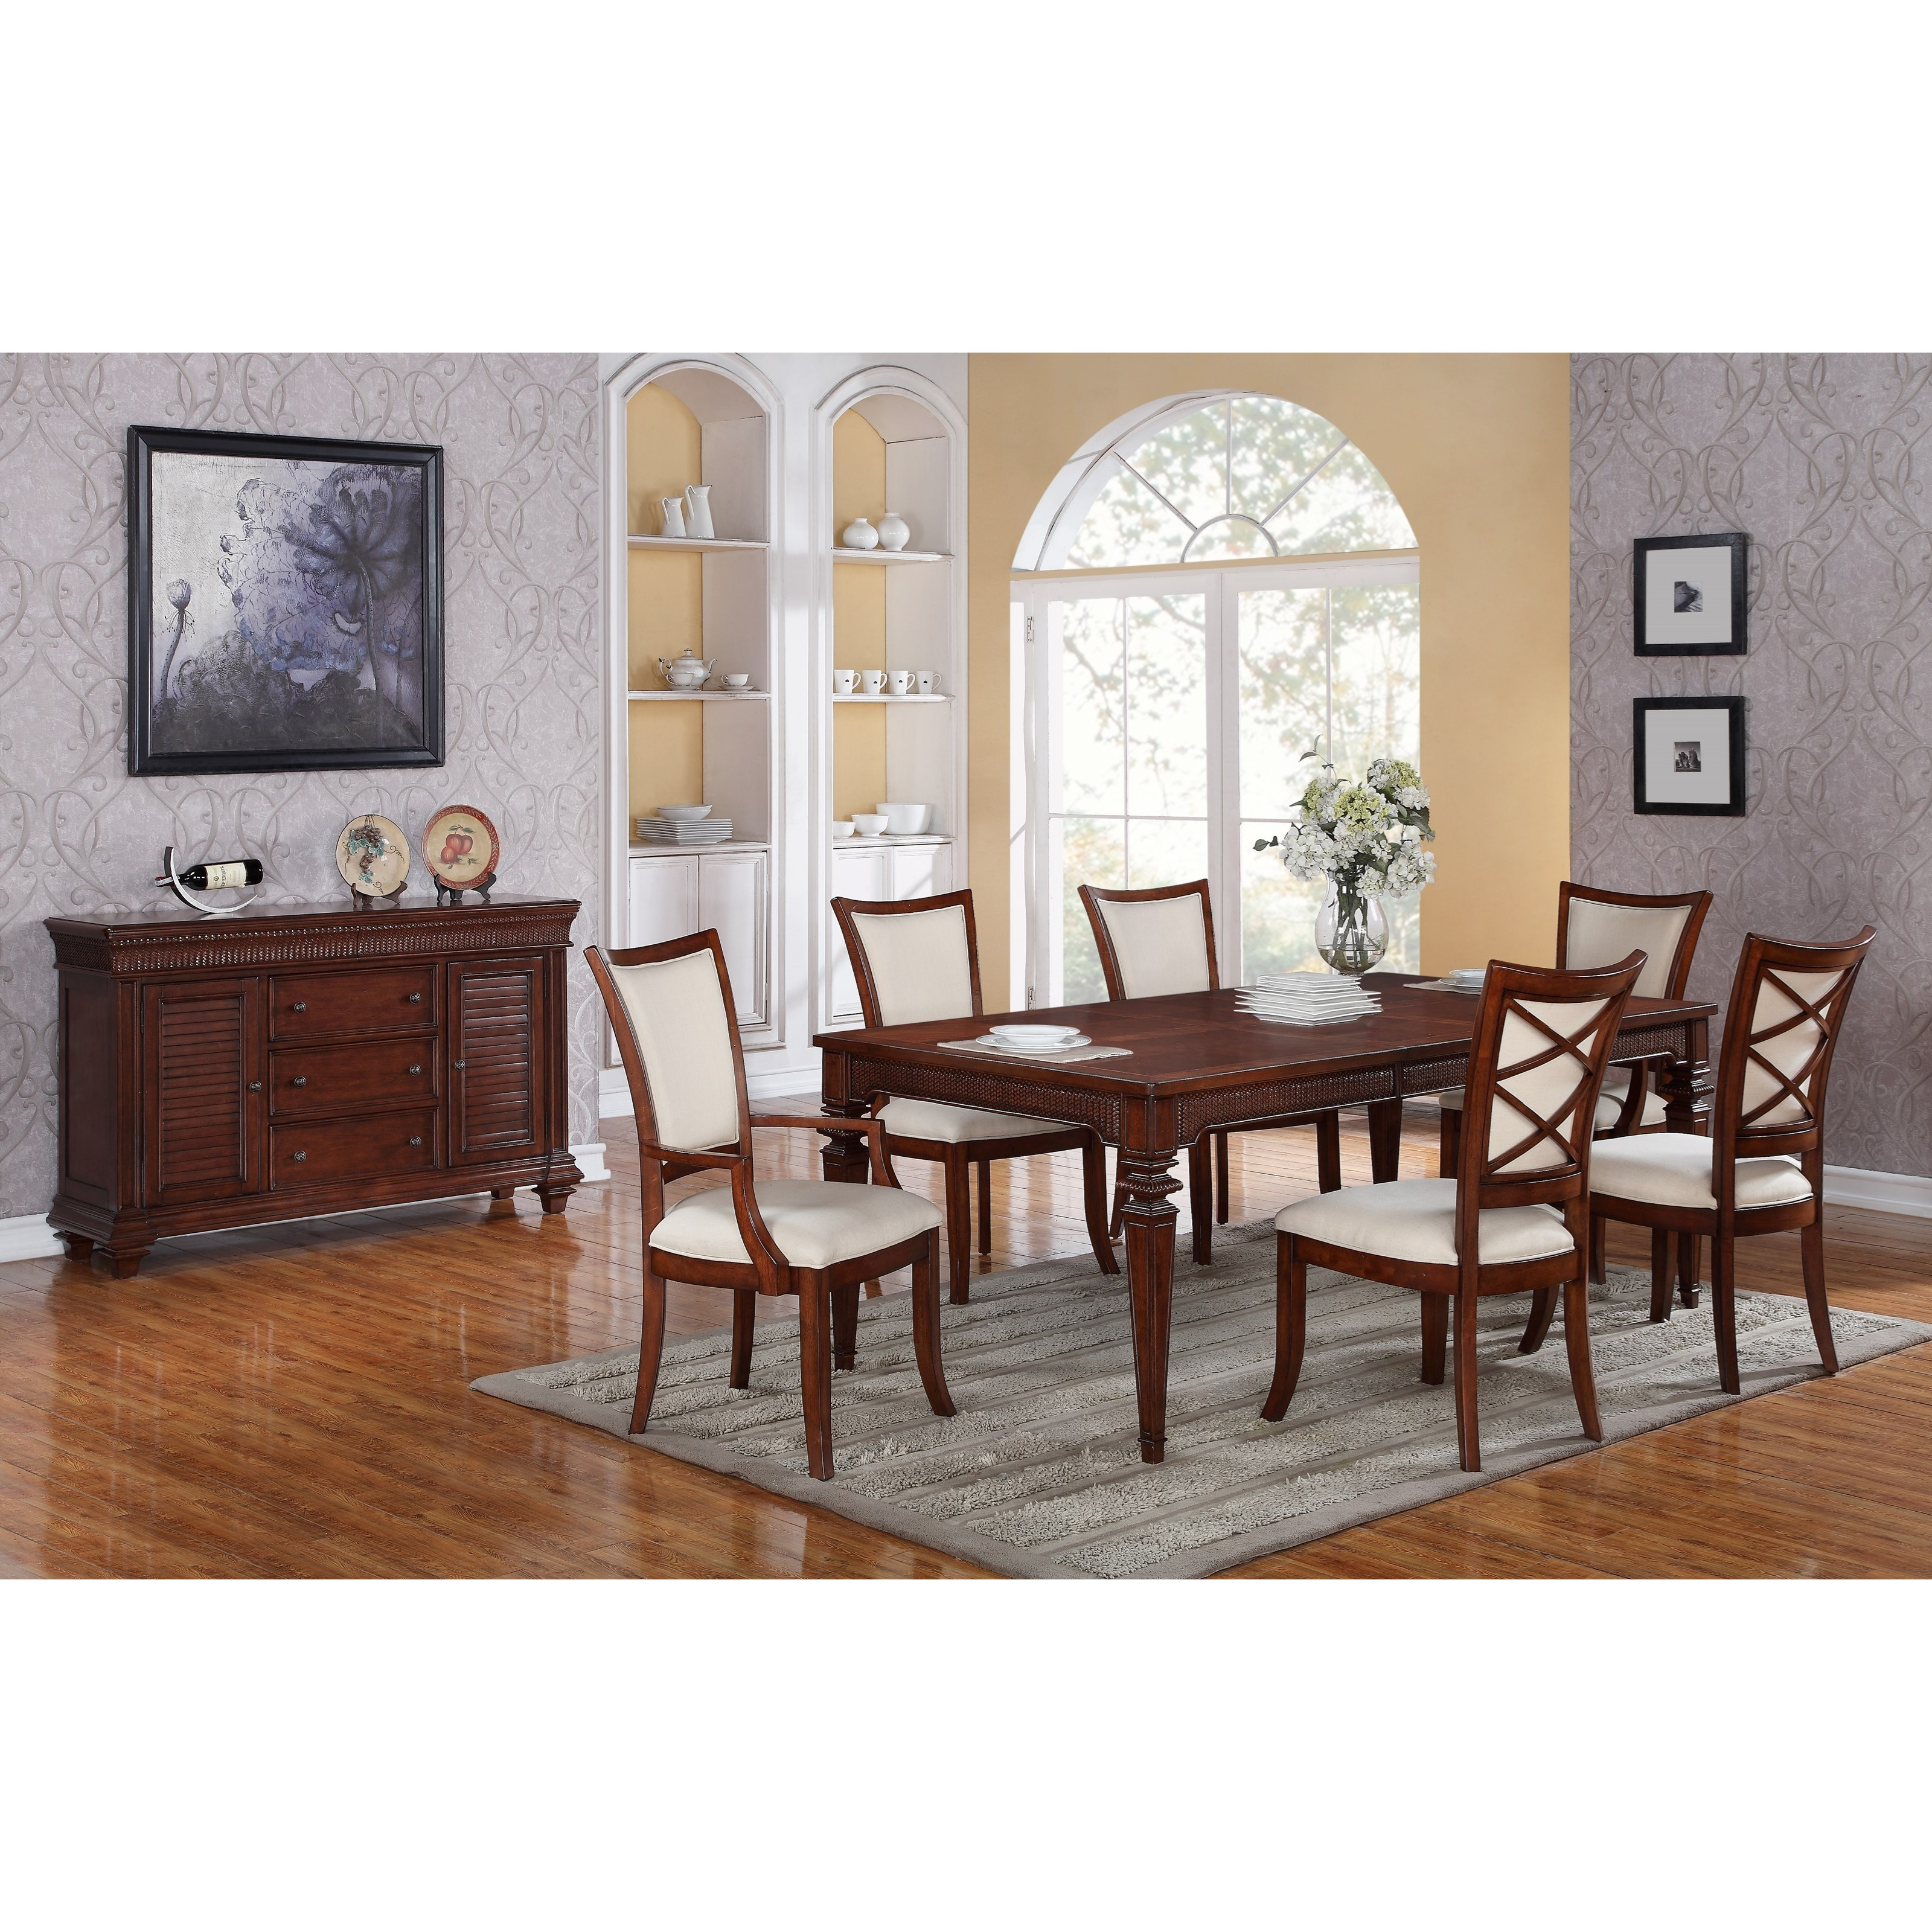 Chicago Traditional Formal Dining Room Furniture Stores: Riverside Furniture Windward Bay Formal Dining Room Group